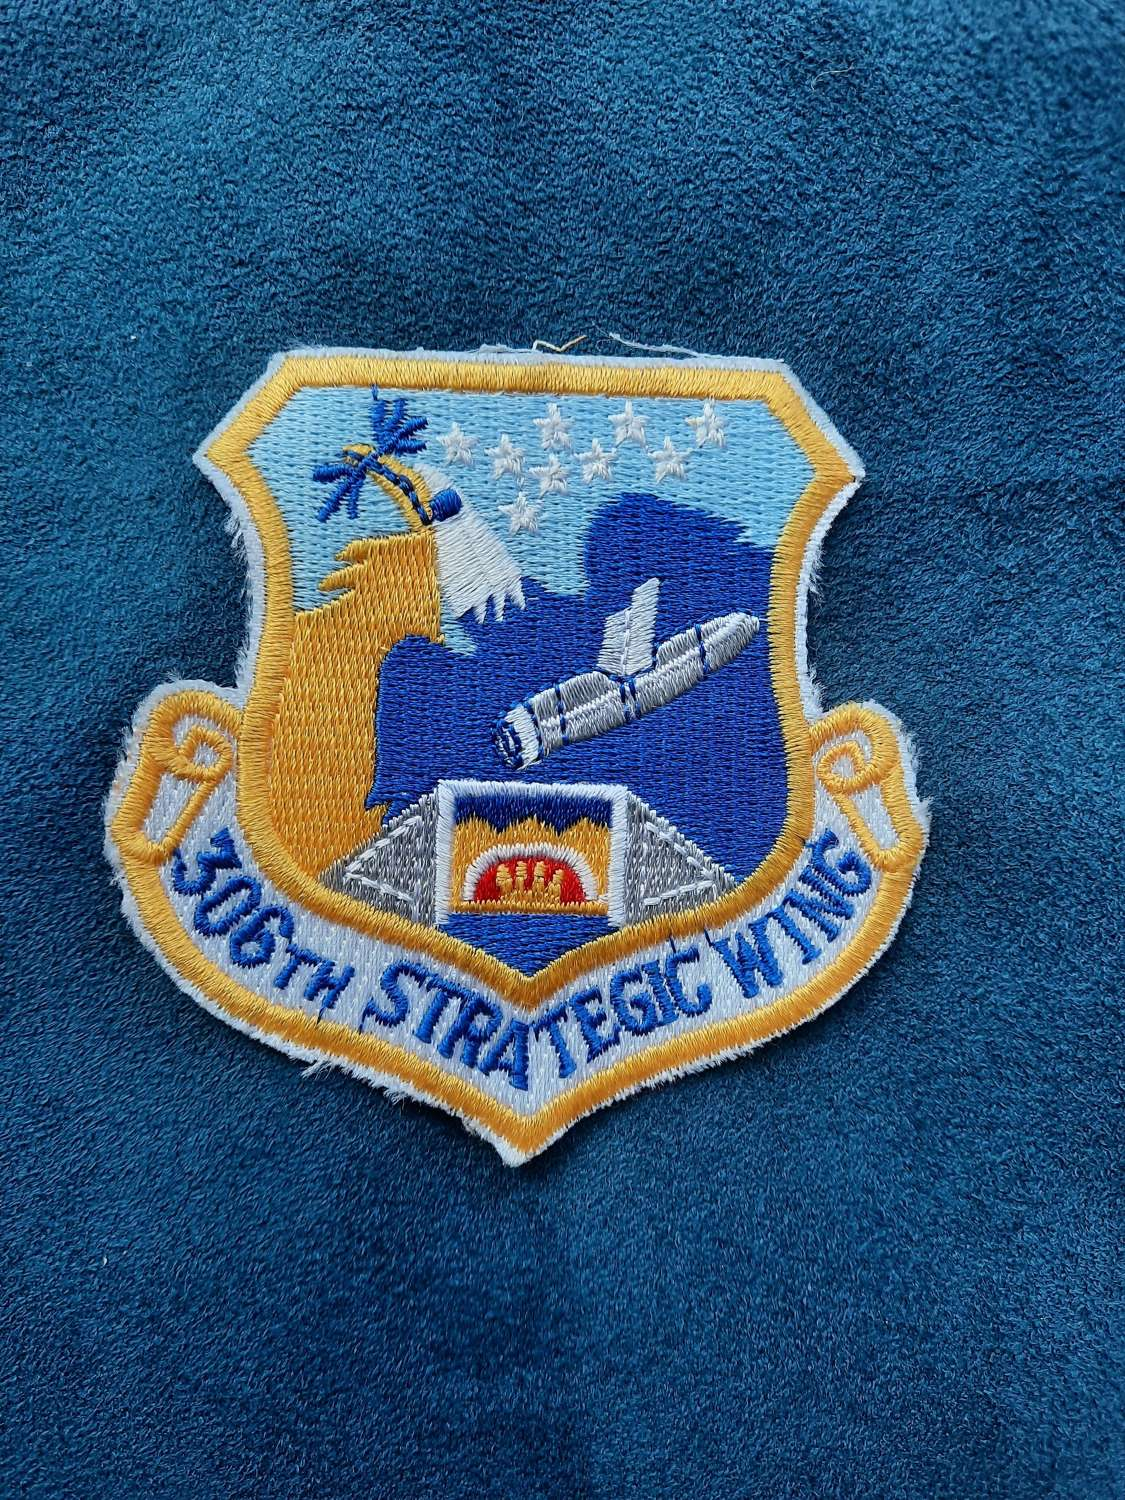 USAF 306th Strategic Wing Patch